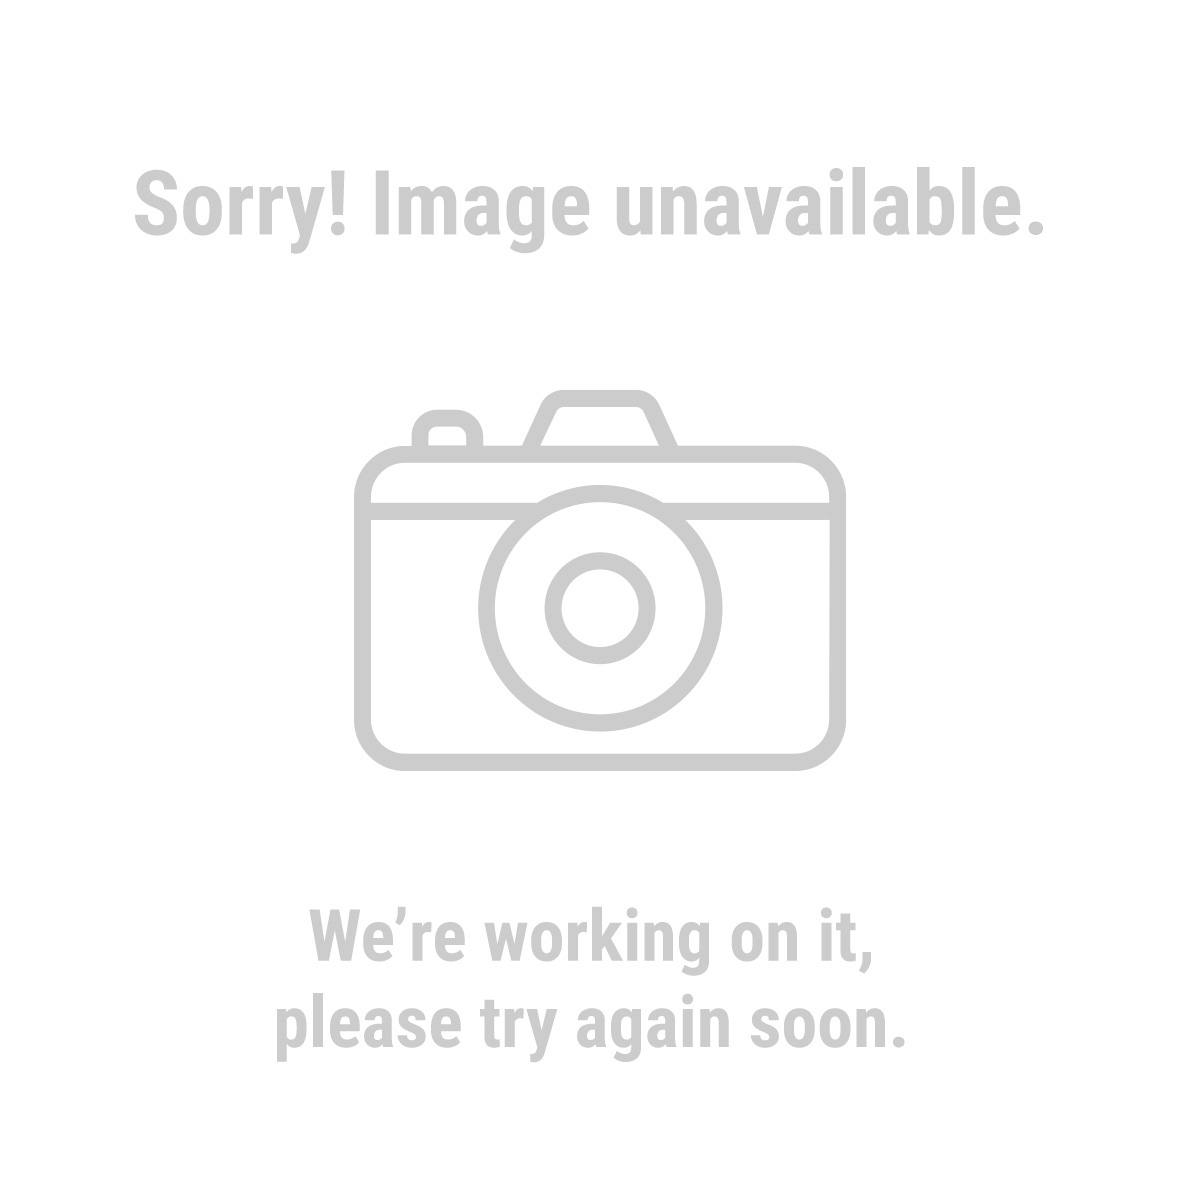 Central Pneumatic 69783 212 cc, 9 Gallon, 135 PSI Gas Powered Wheelbarrow Air Compressor